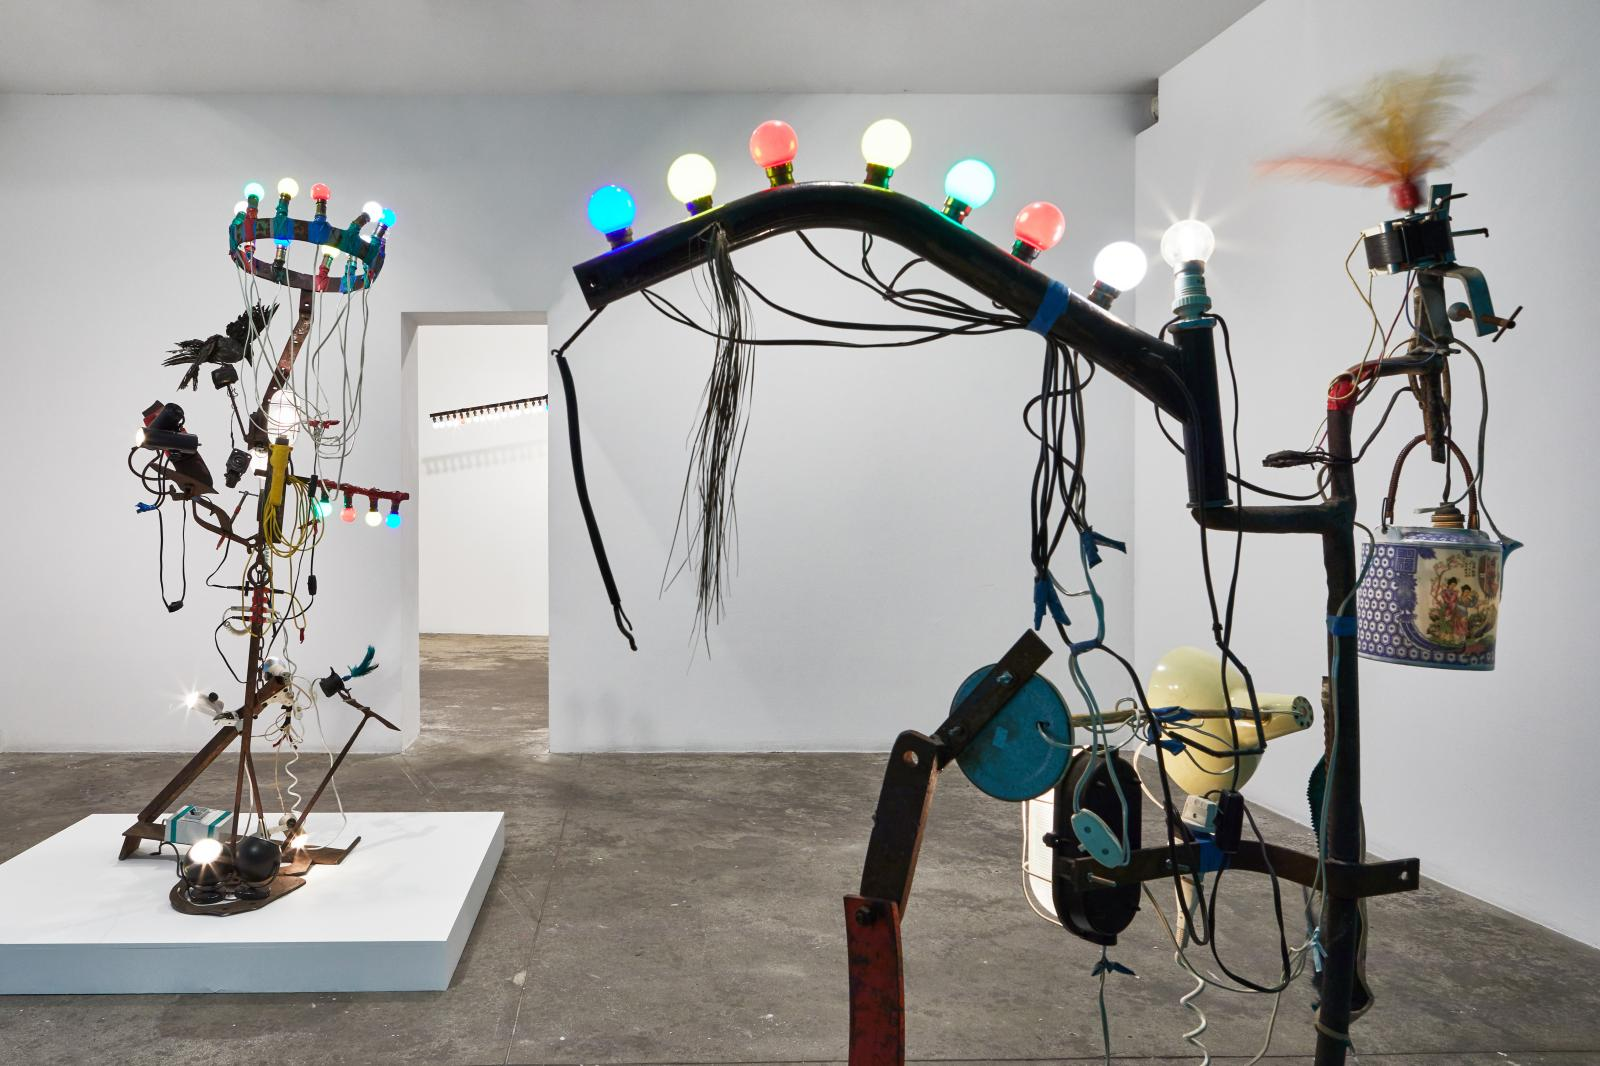 Vue de l'exposition « Jean Tinguely, Bricolages & Débri(s)collages », 2019 Photo : Aurélien Mole ; Courtesy Galerie GP & N Vallois, Paris